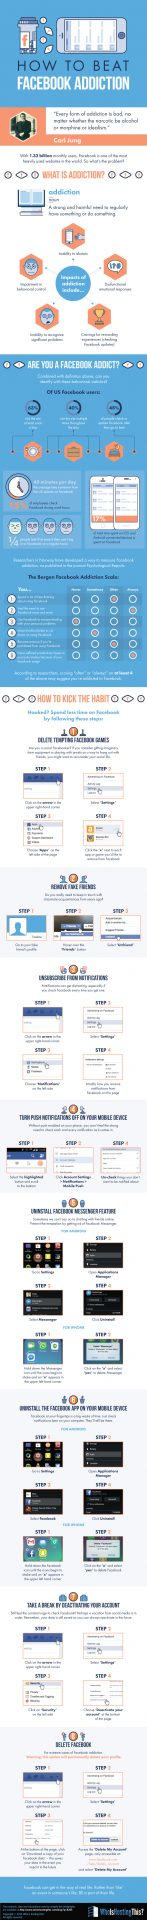 V1-How-to-beat-facebook-addiction